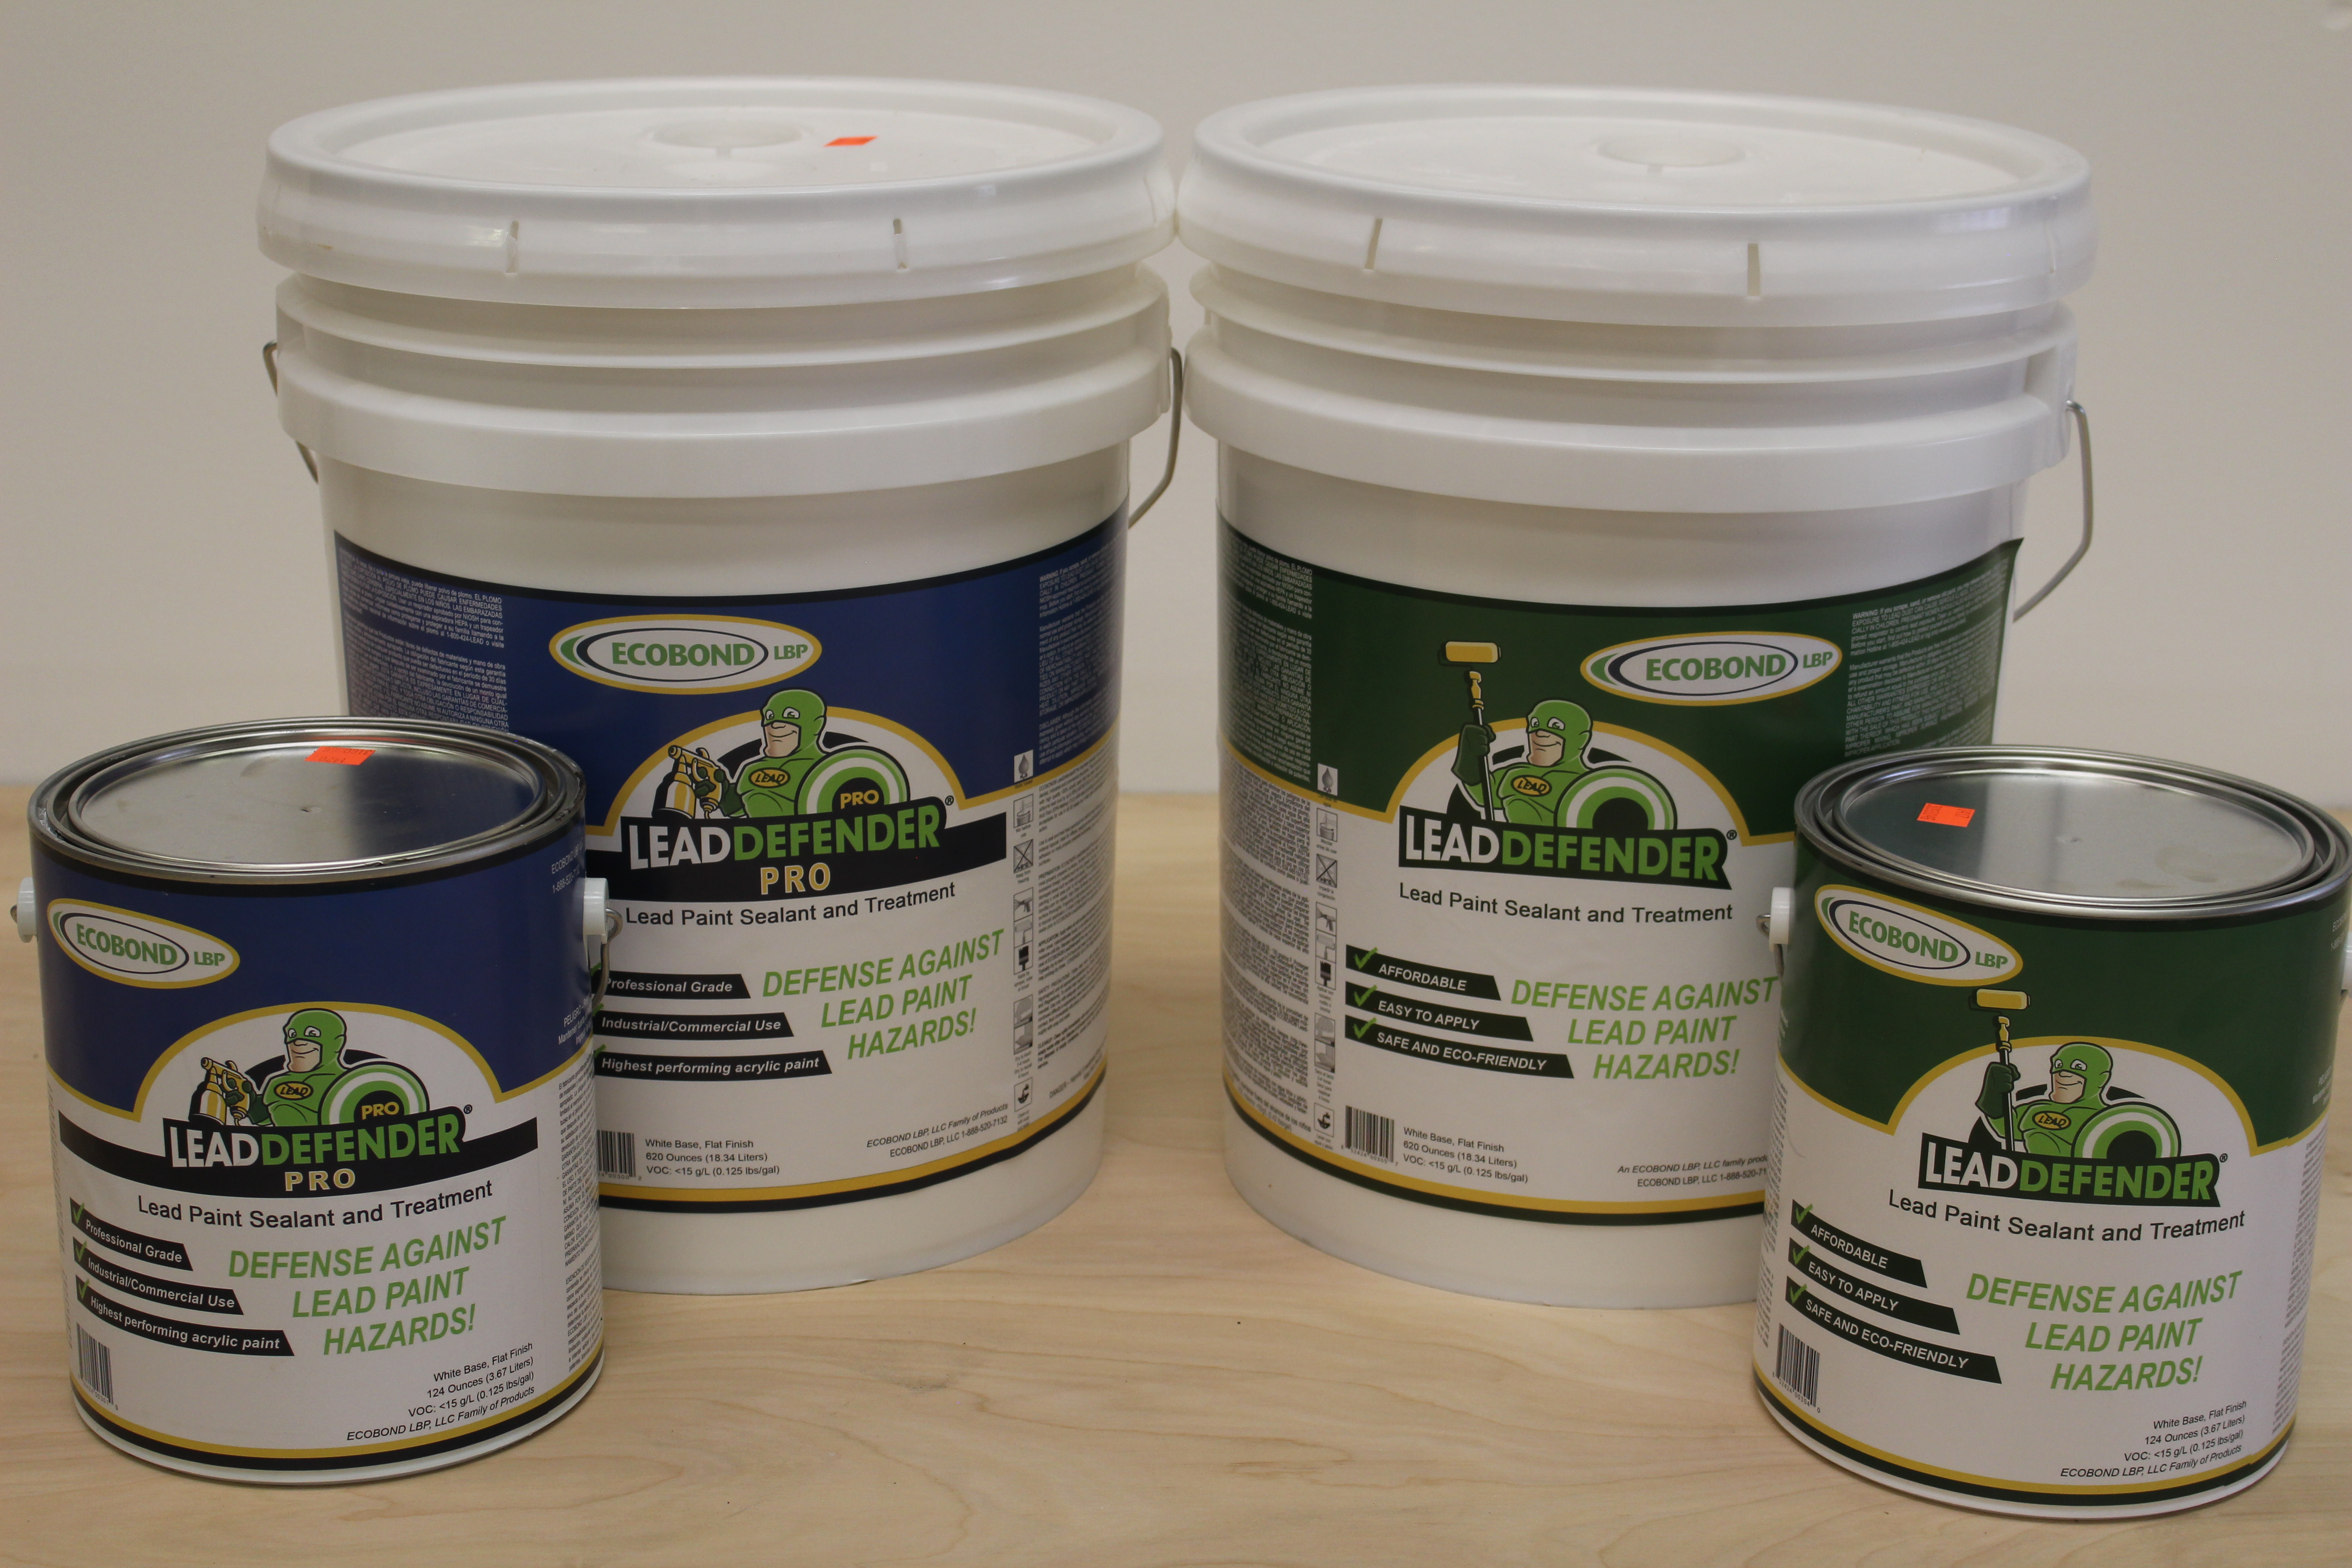 Products for removing lead paint